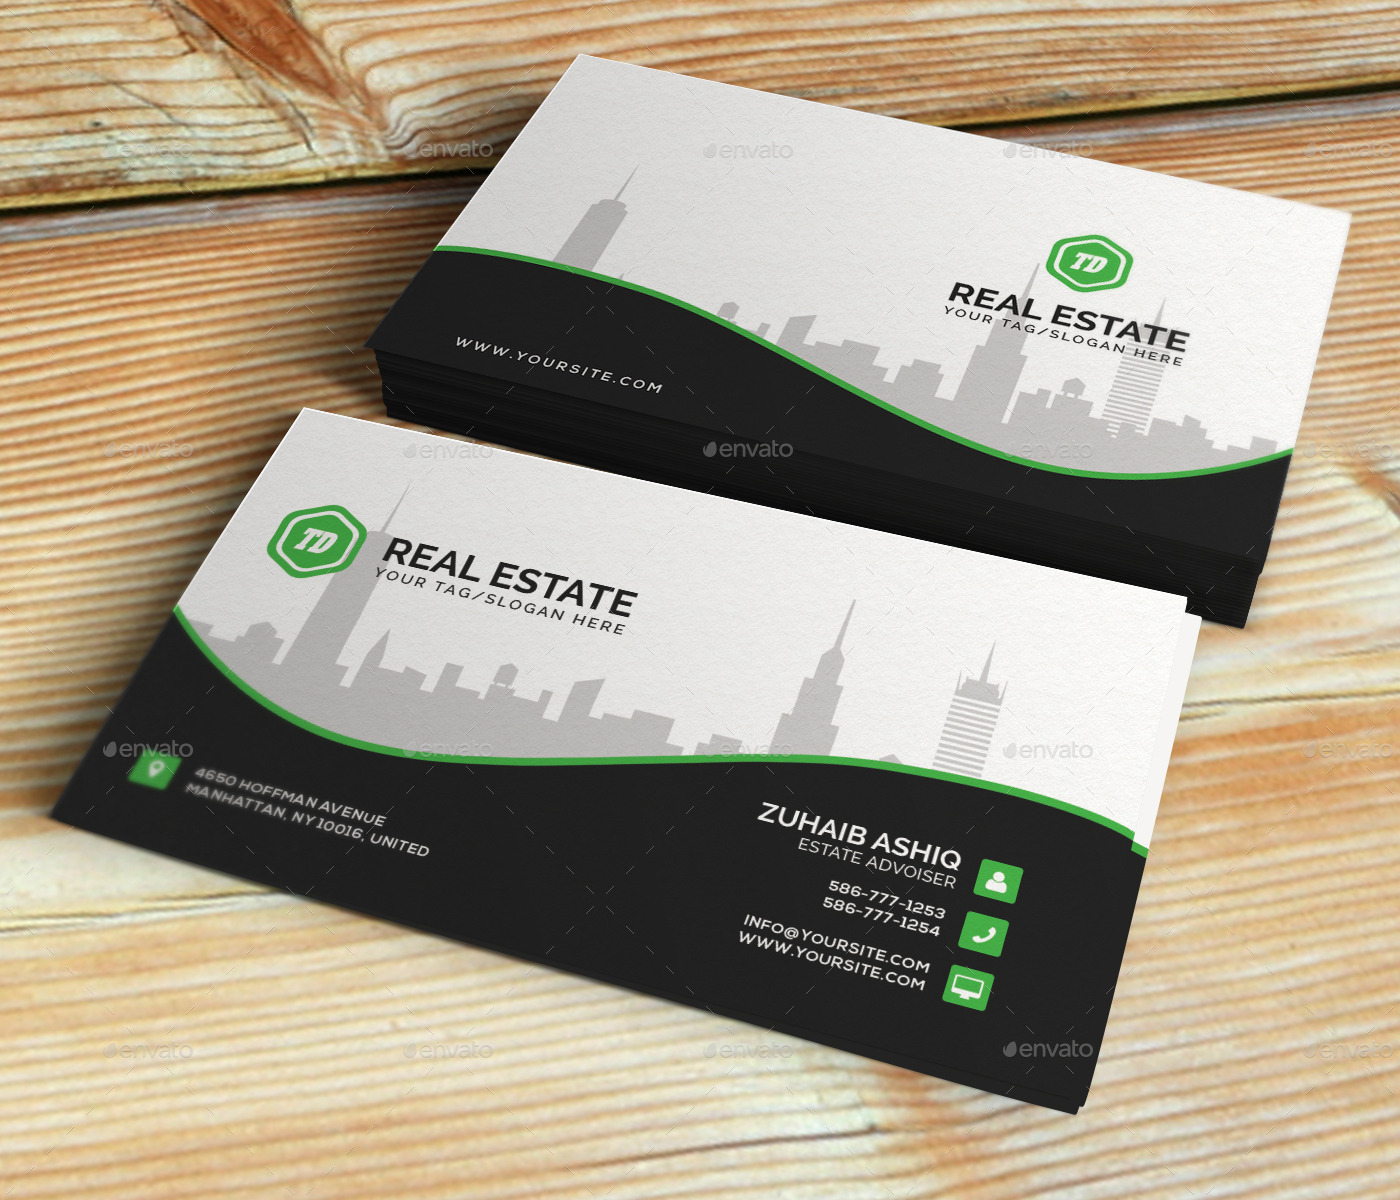 Real Estate Business Card Template By Themedesk GraphicRiver - Real estate business card template